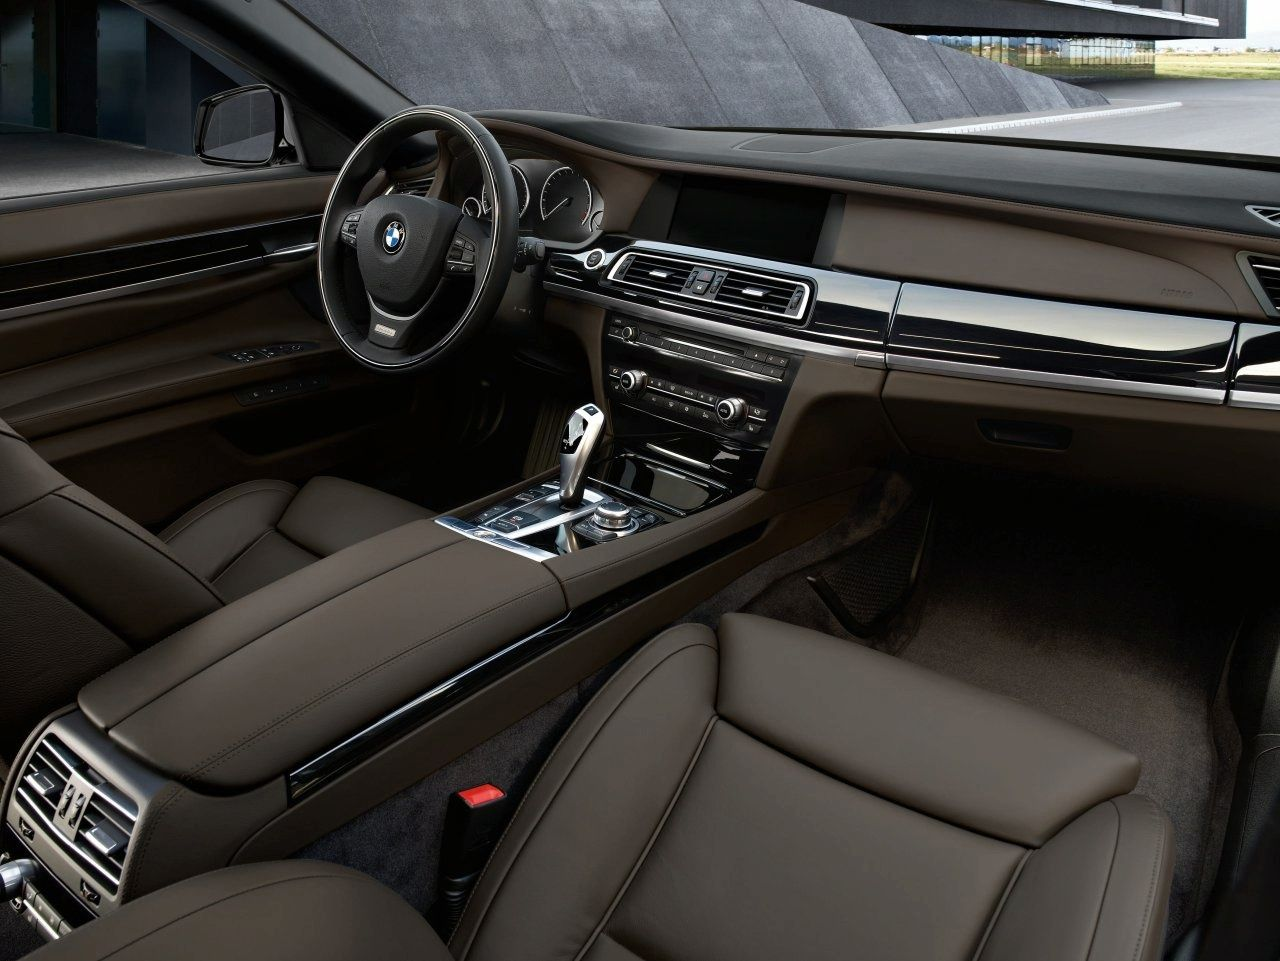 You have to admit bmw has the most tasteful cabin design of any car